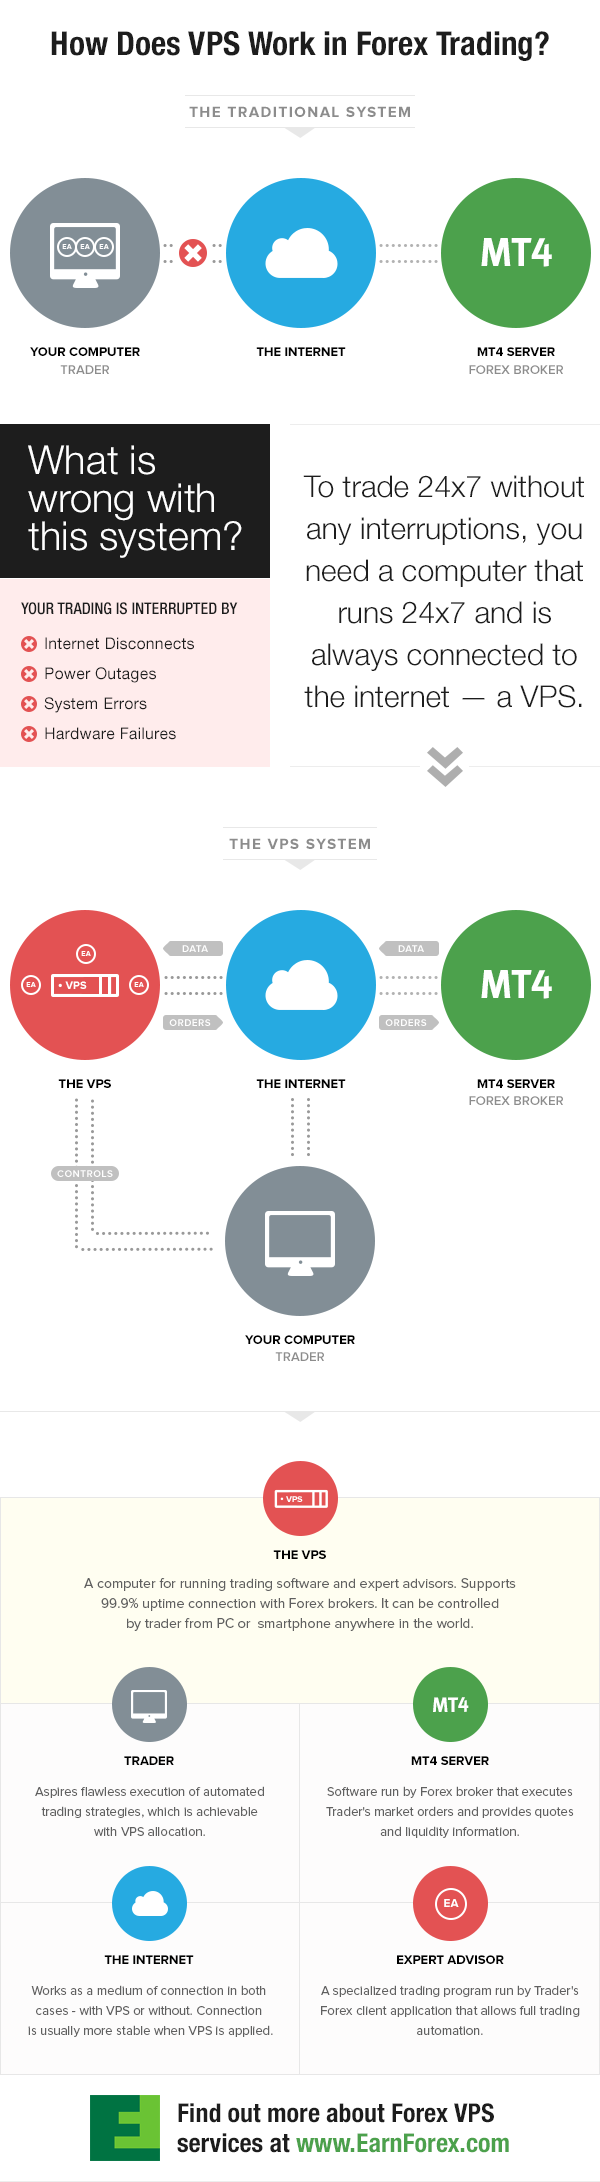 How VPS Works? - Infographic